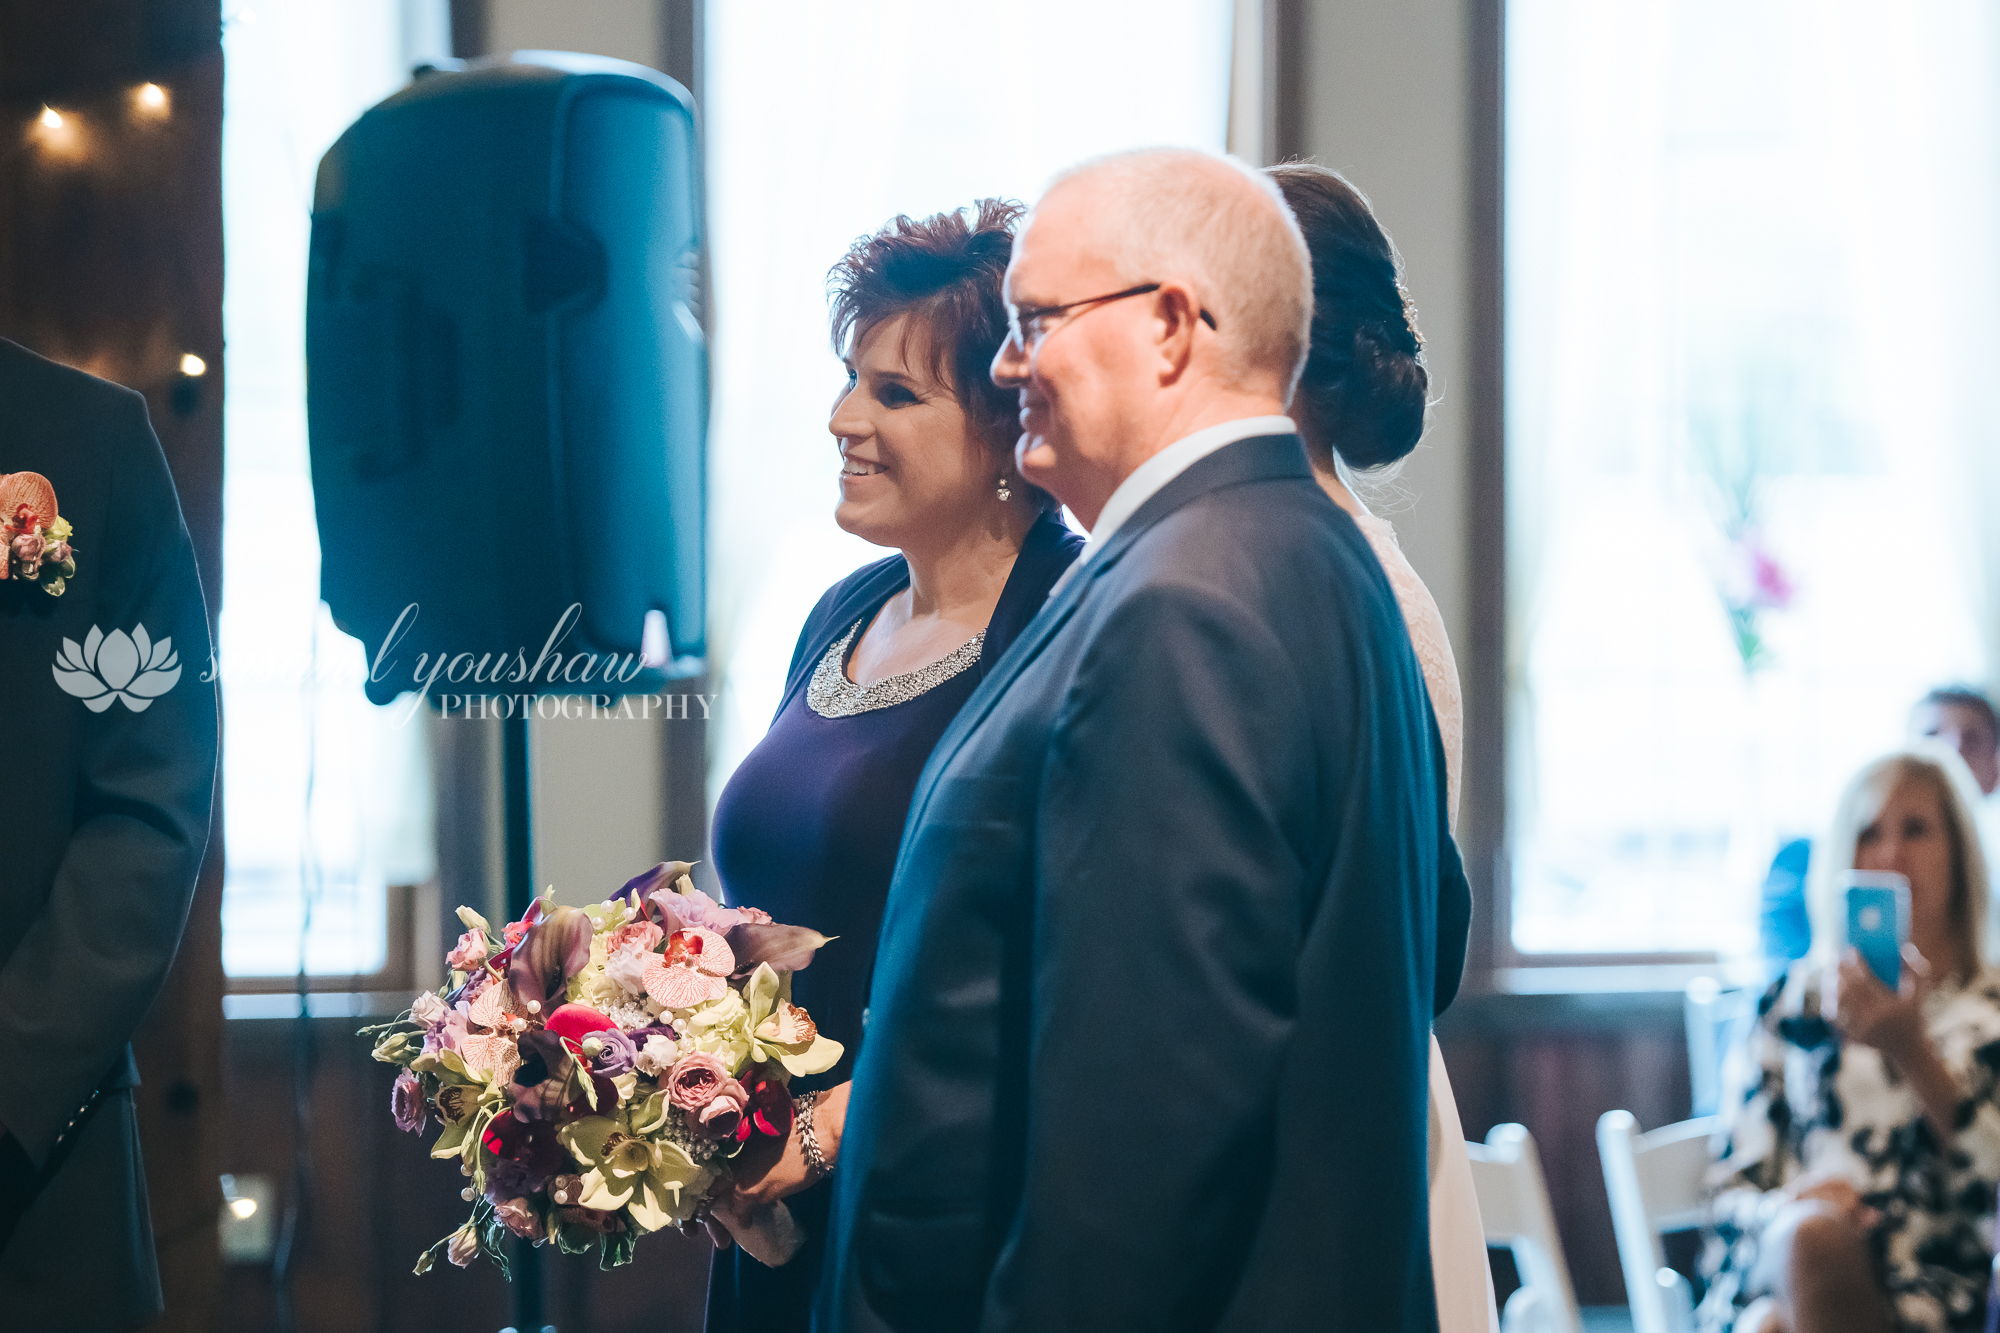 Adena and  Erik Wedding 05-17-2019 SLY Photography-87.jpg